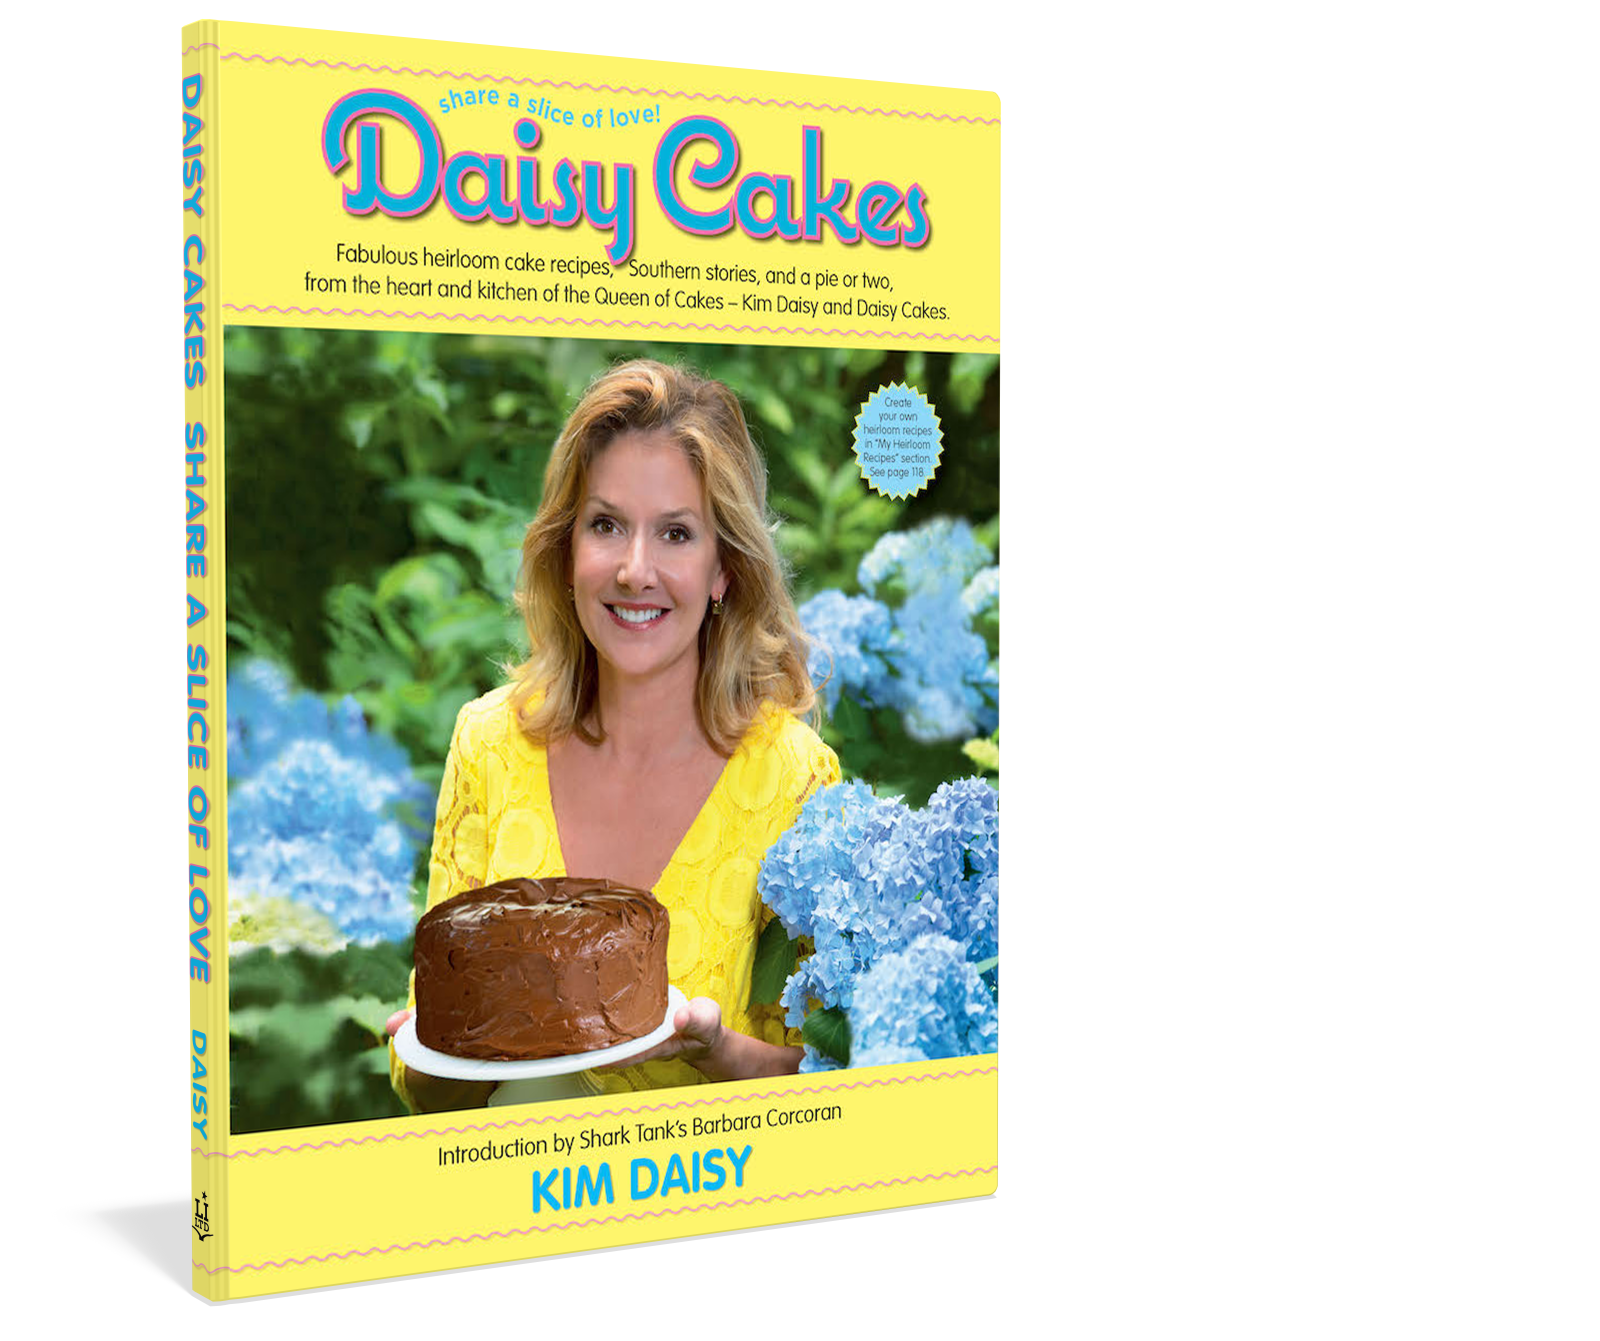 Cover: Daisy Cakes Cookbook Author Kim Daisy Starbooks